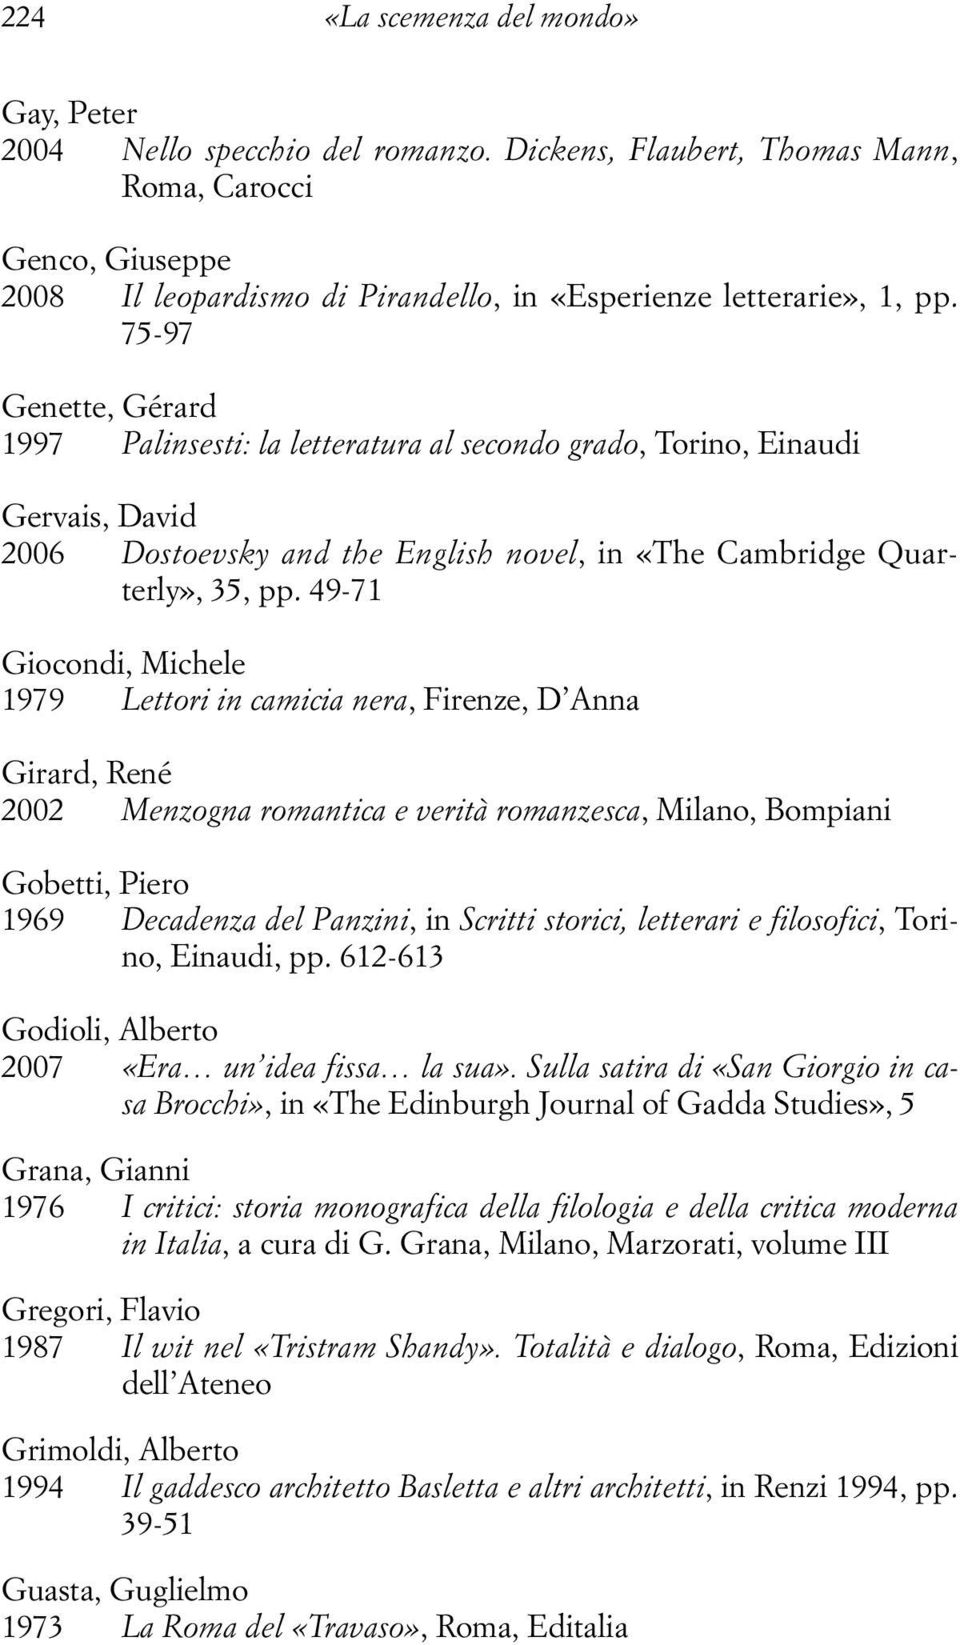 75-97 Genette, Gérard 1997 Palinsesti: la letteratura al secondo grado, Torino, Einaudi Gervais, David 2006 Dostoevsky and the English novel, in «The Cambridge Quarterly», 35, pp.